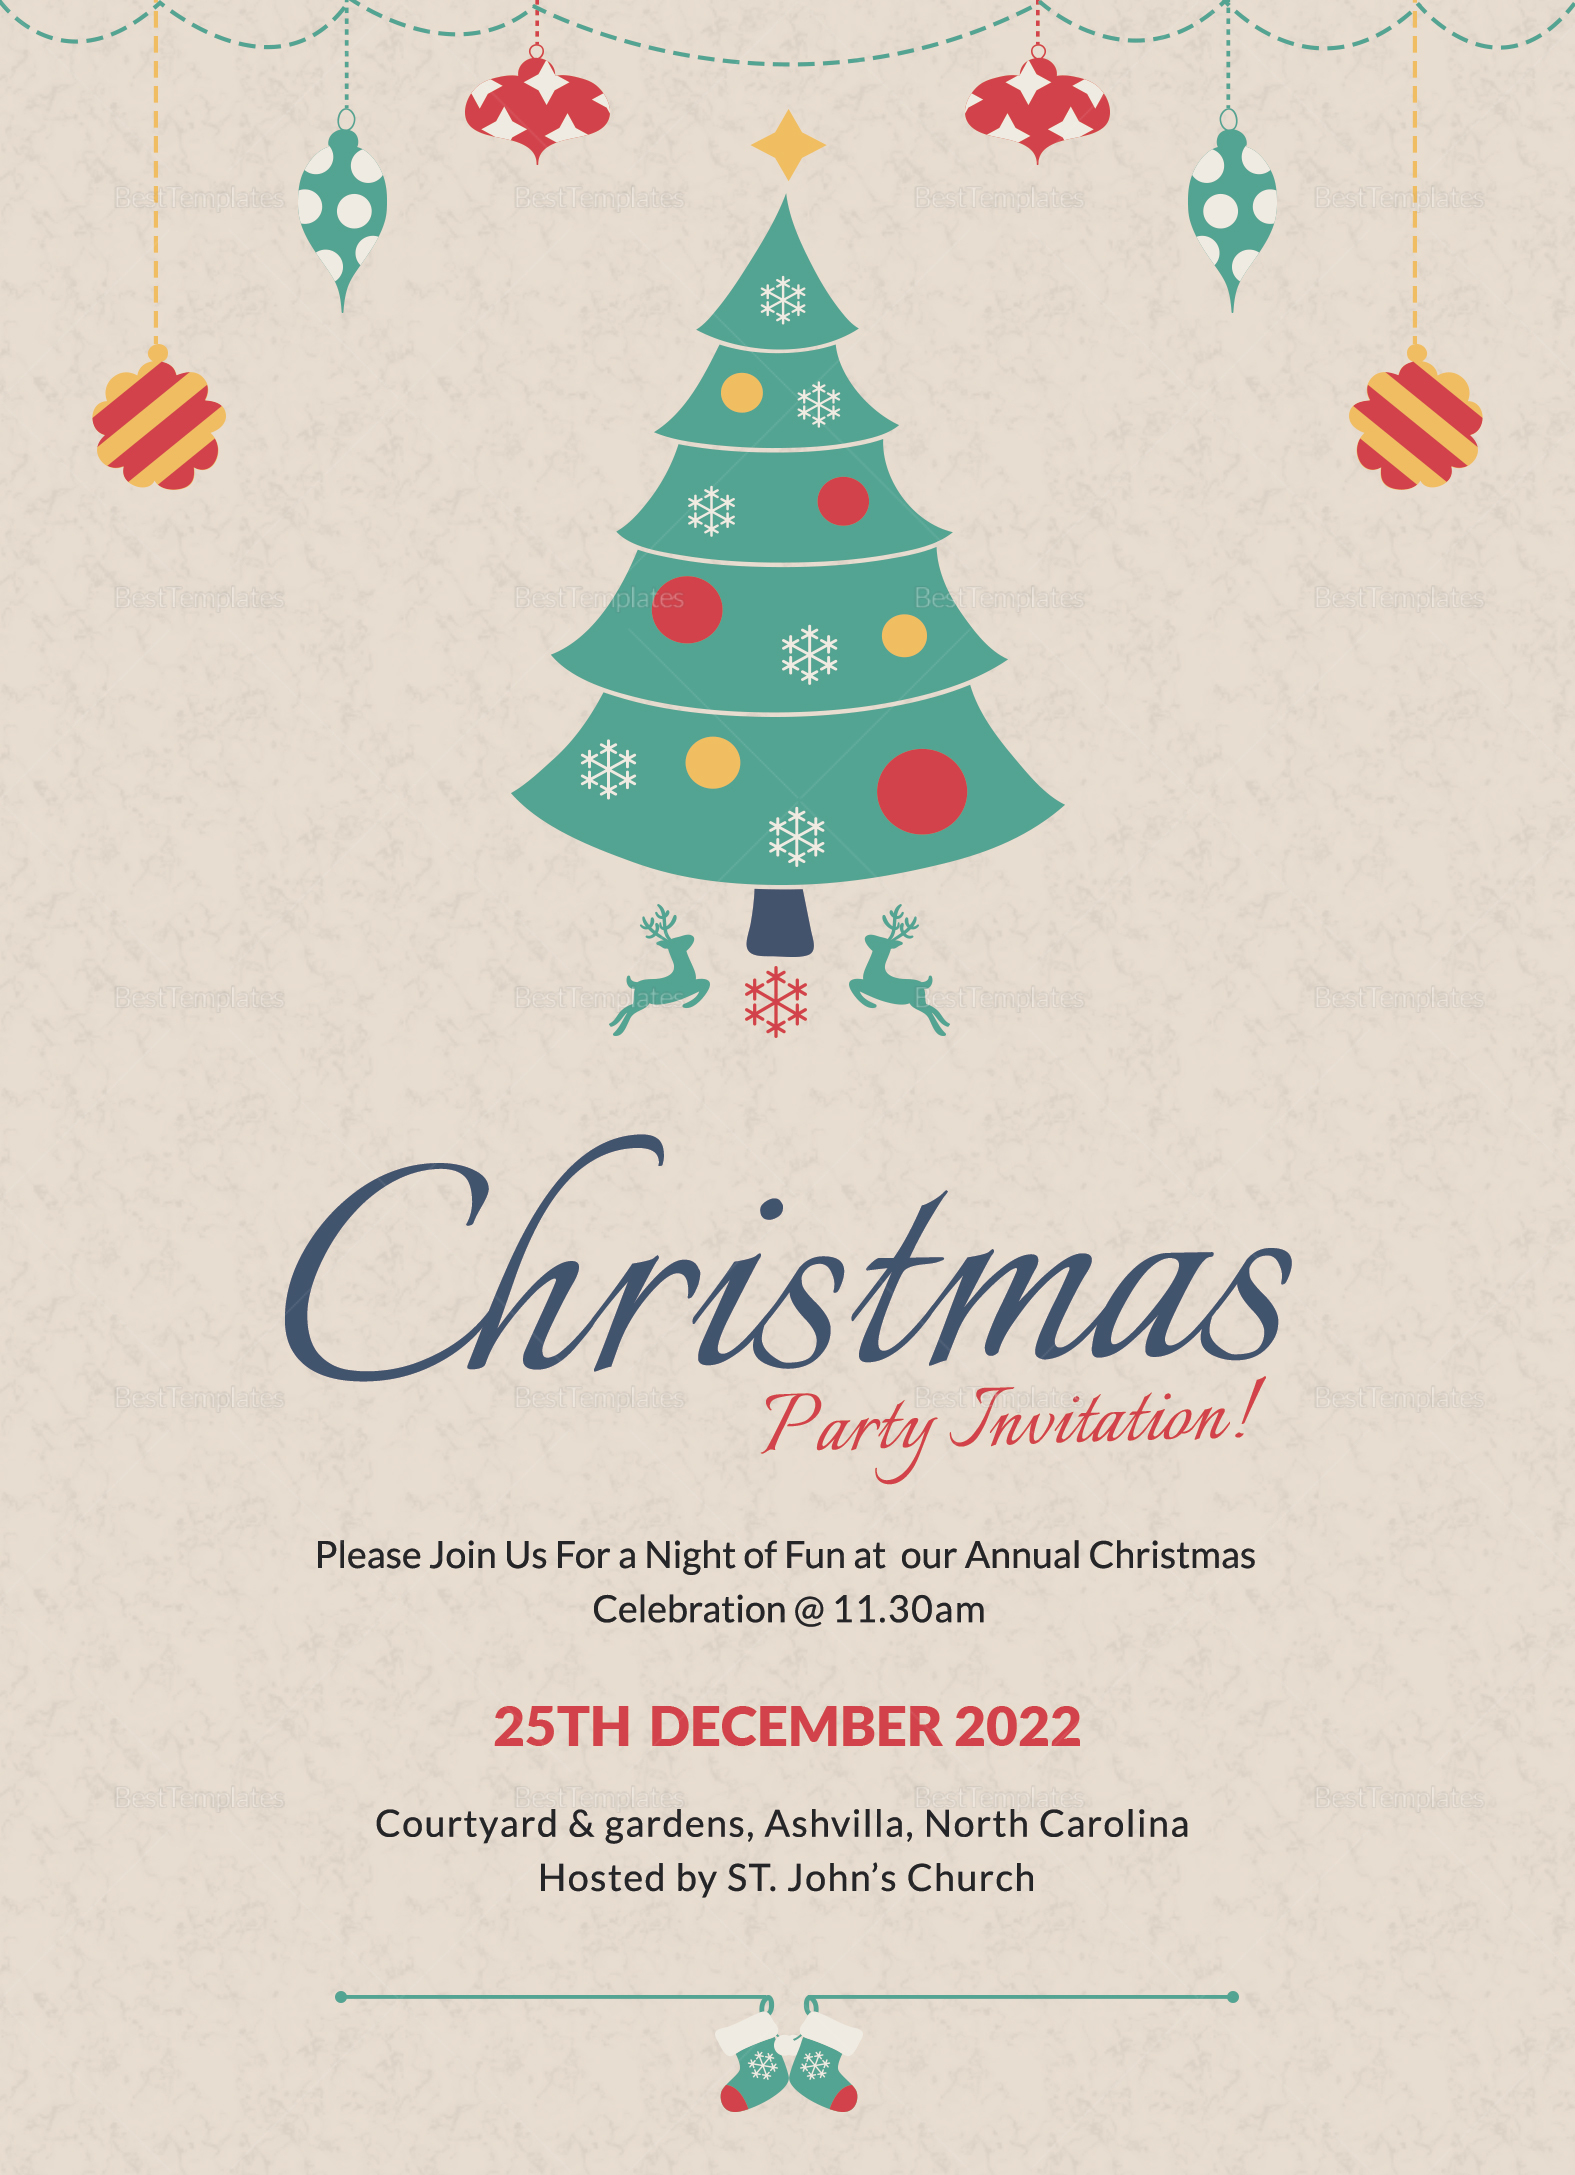 Christmas Party Invitation Template In Adobe Photoshop